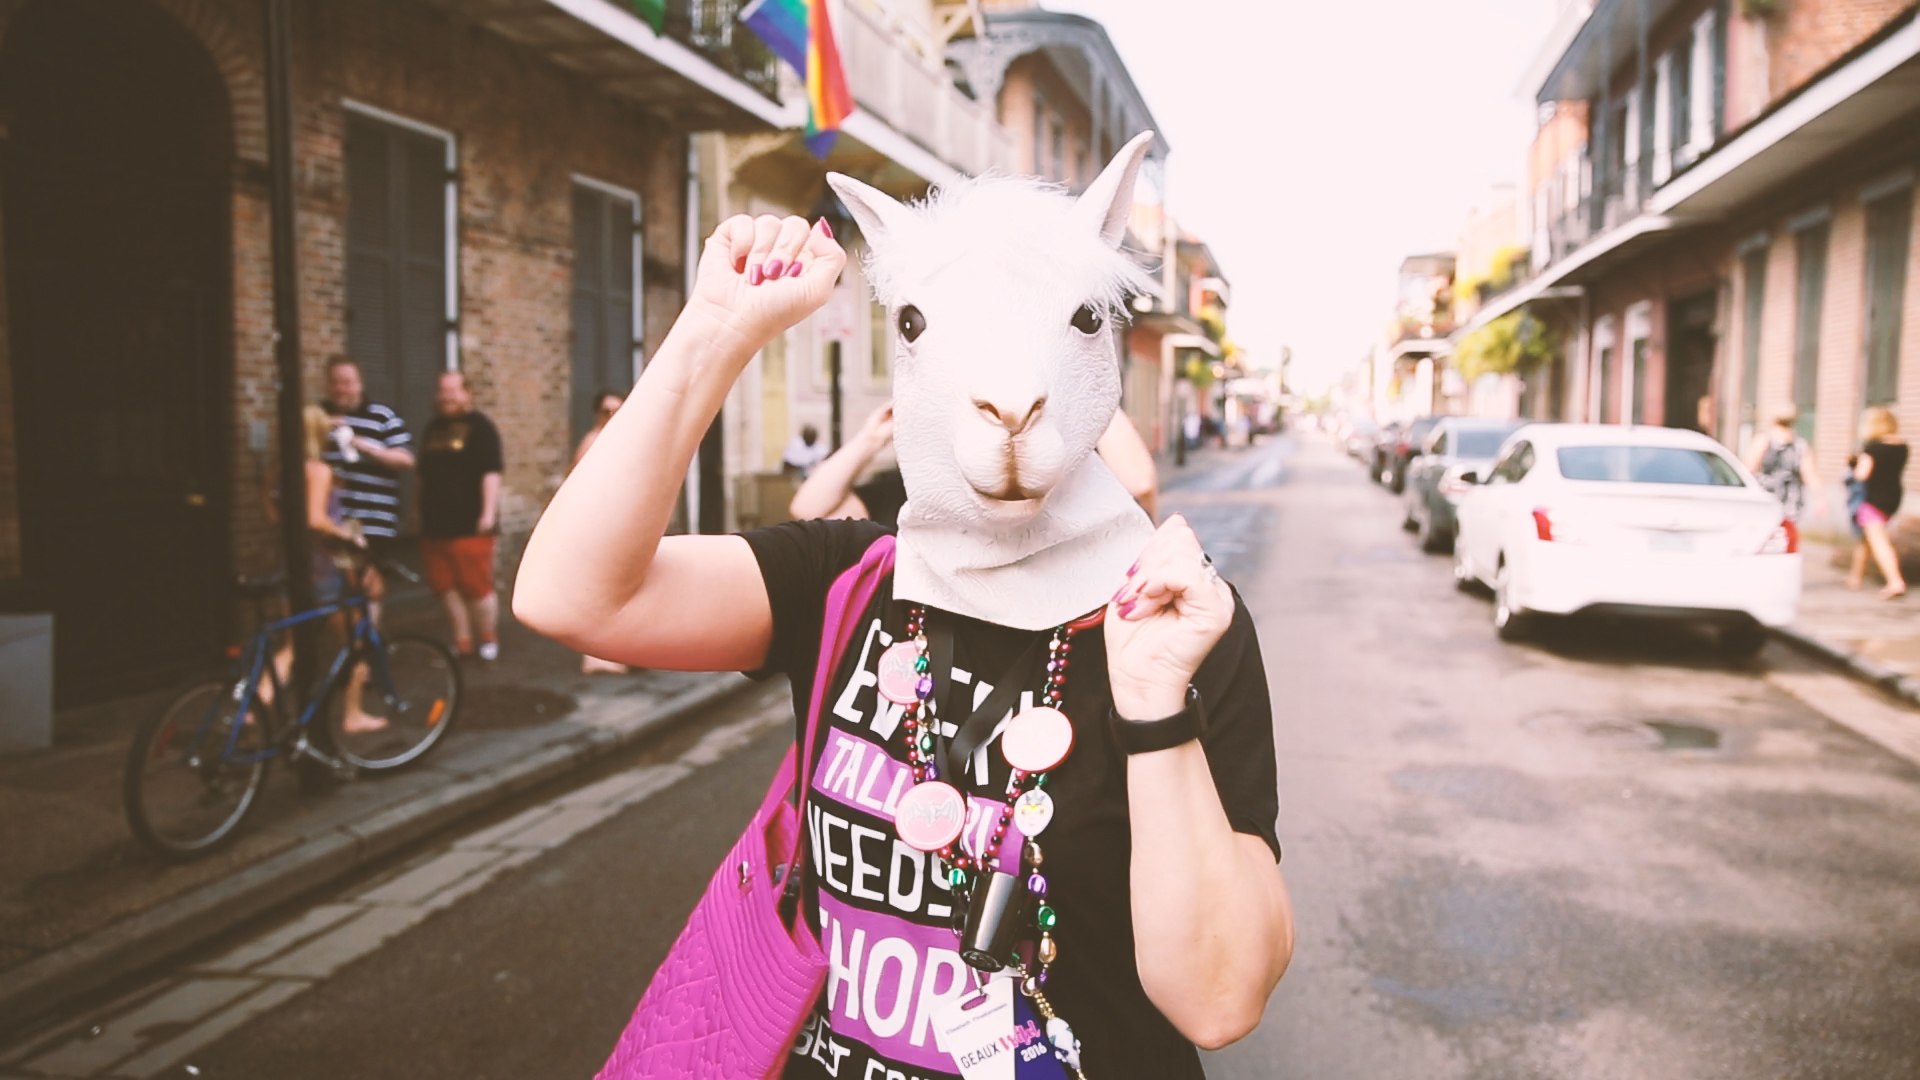 The Llama is the group's mascot.